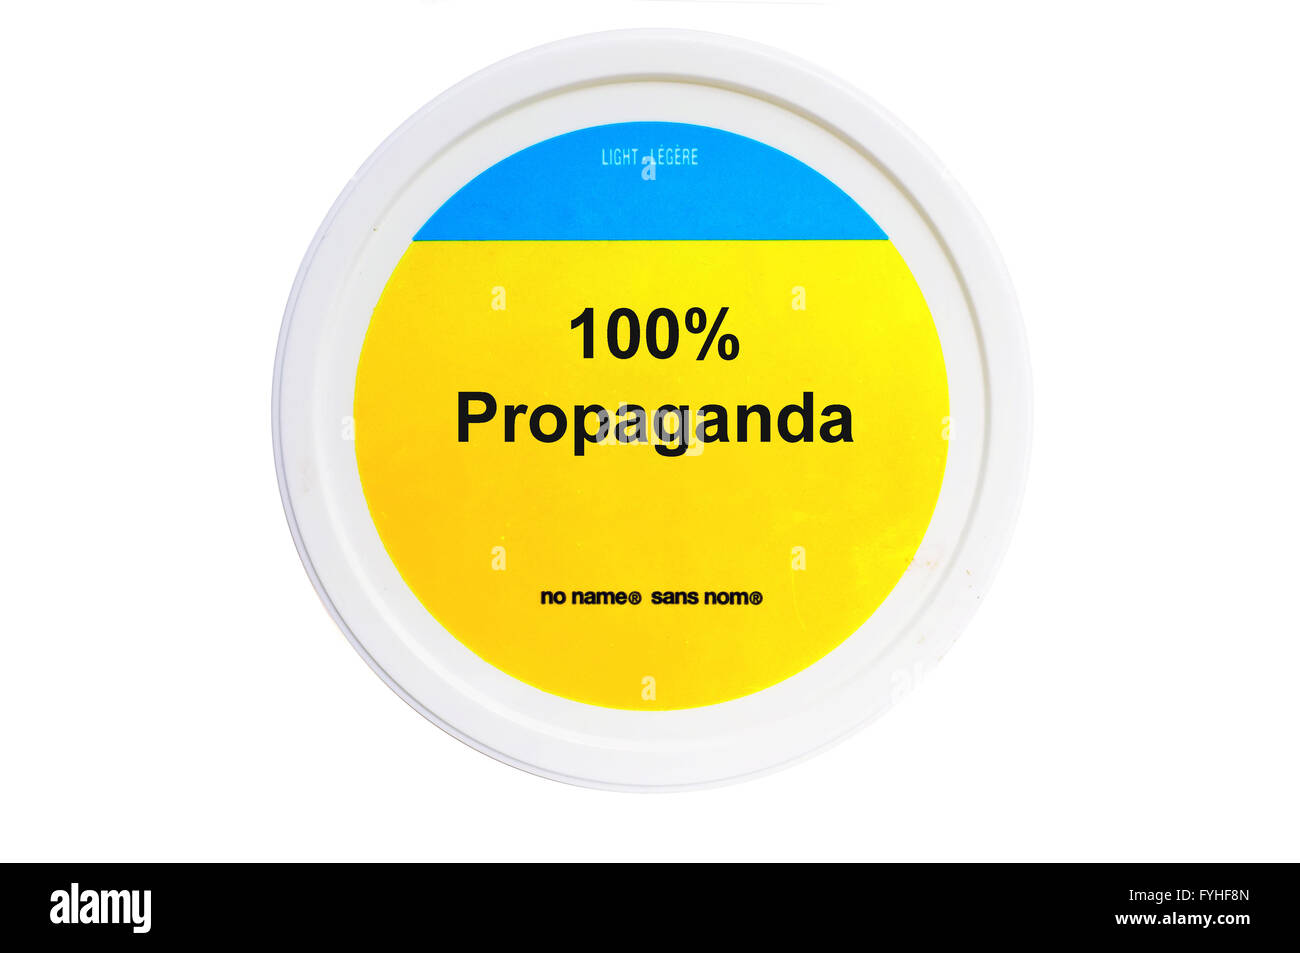 A tub with 100% Propaganda written on the label photographed against a white background. - Stock Image